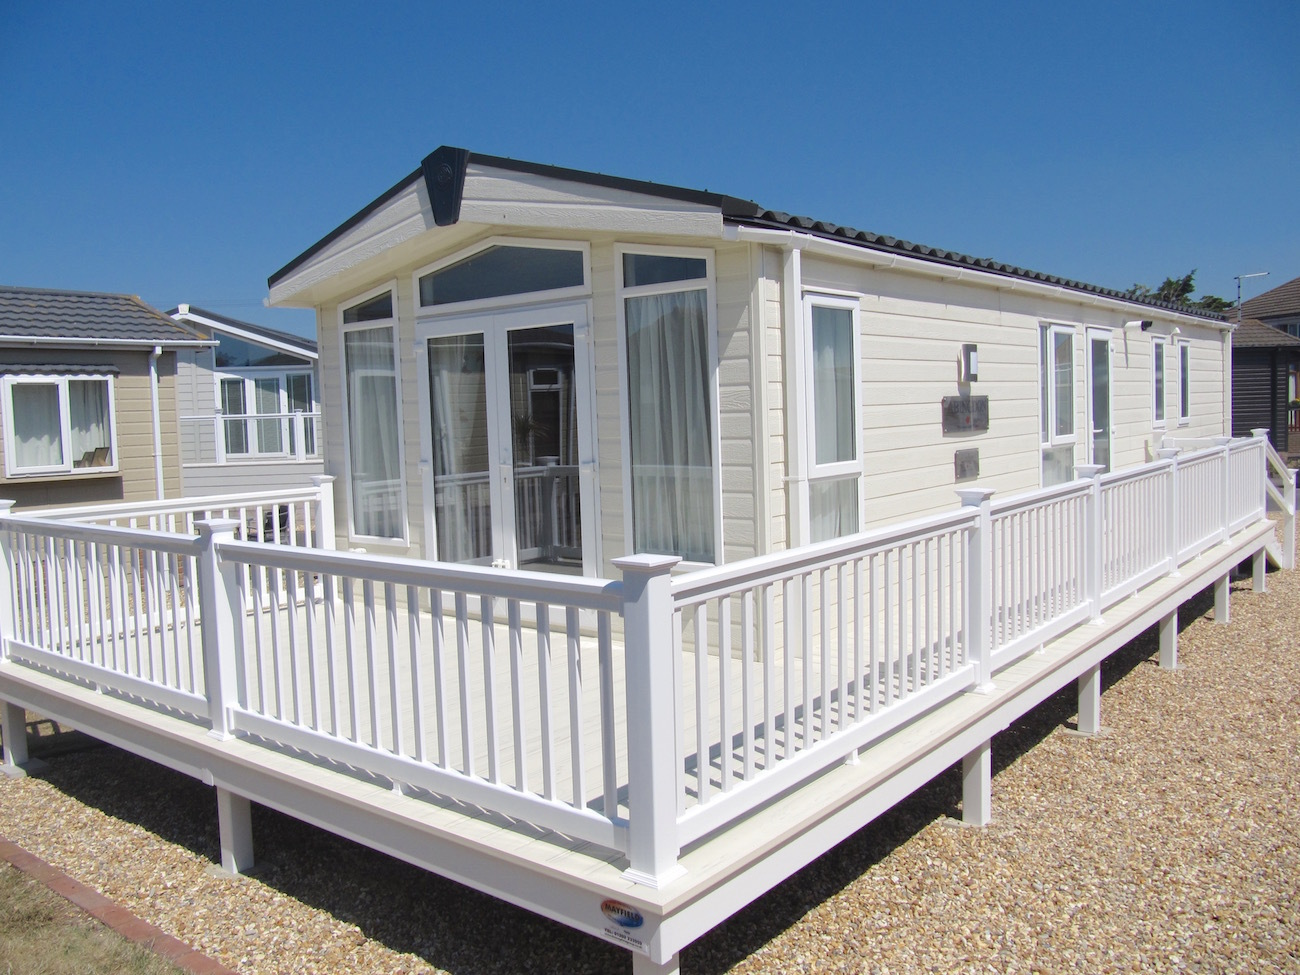 New Pemberton Abingdon for Sale in Lancing